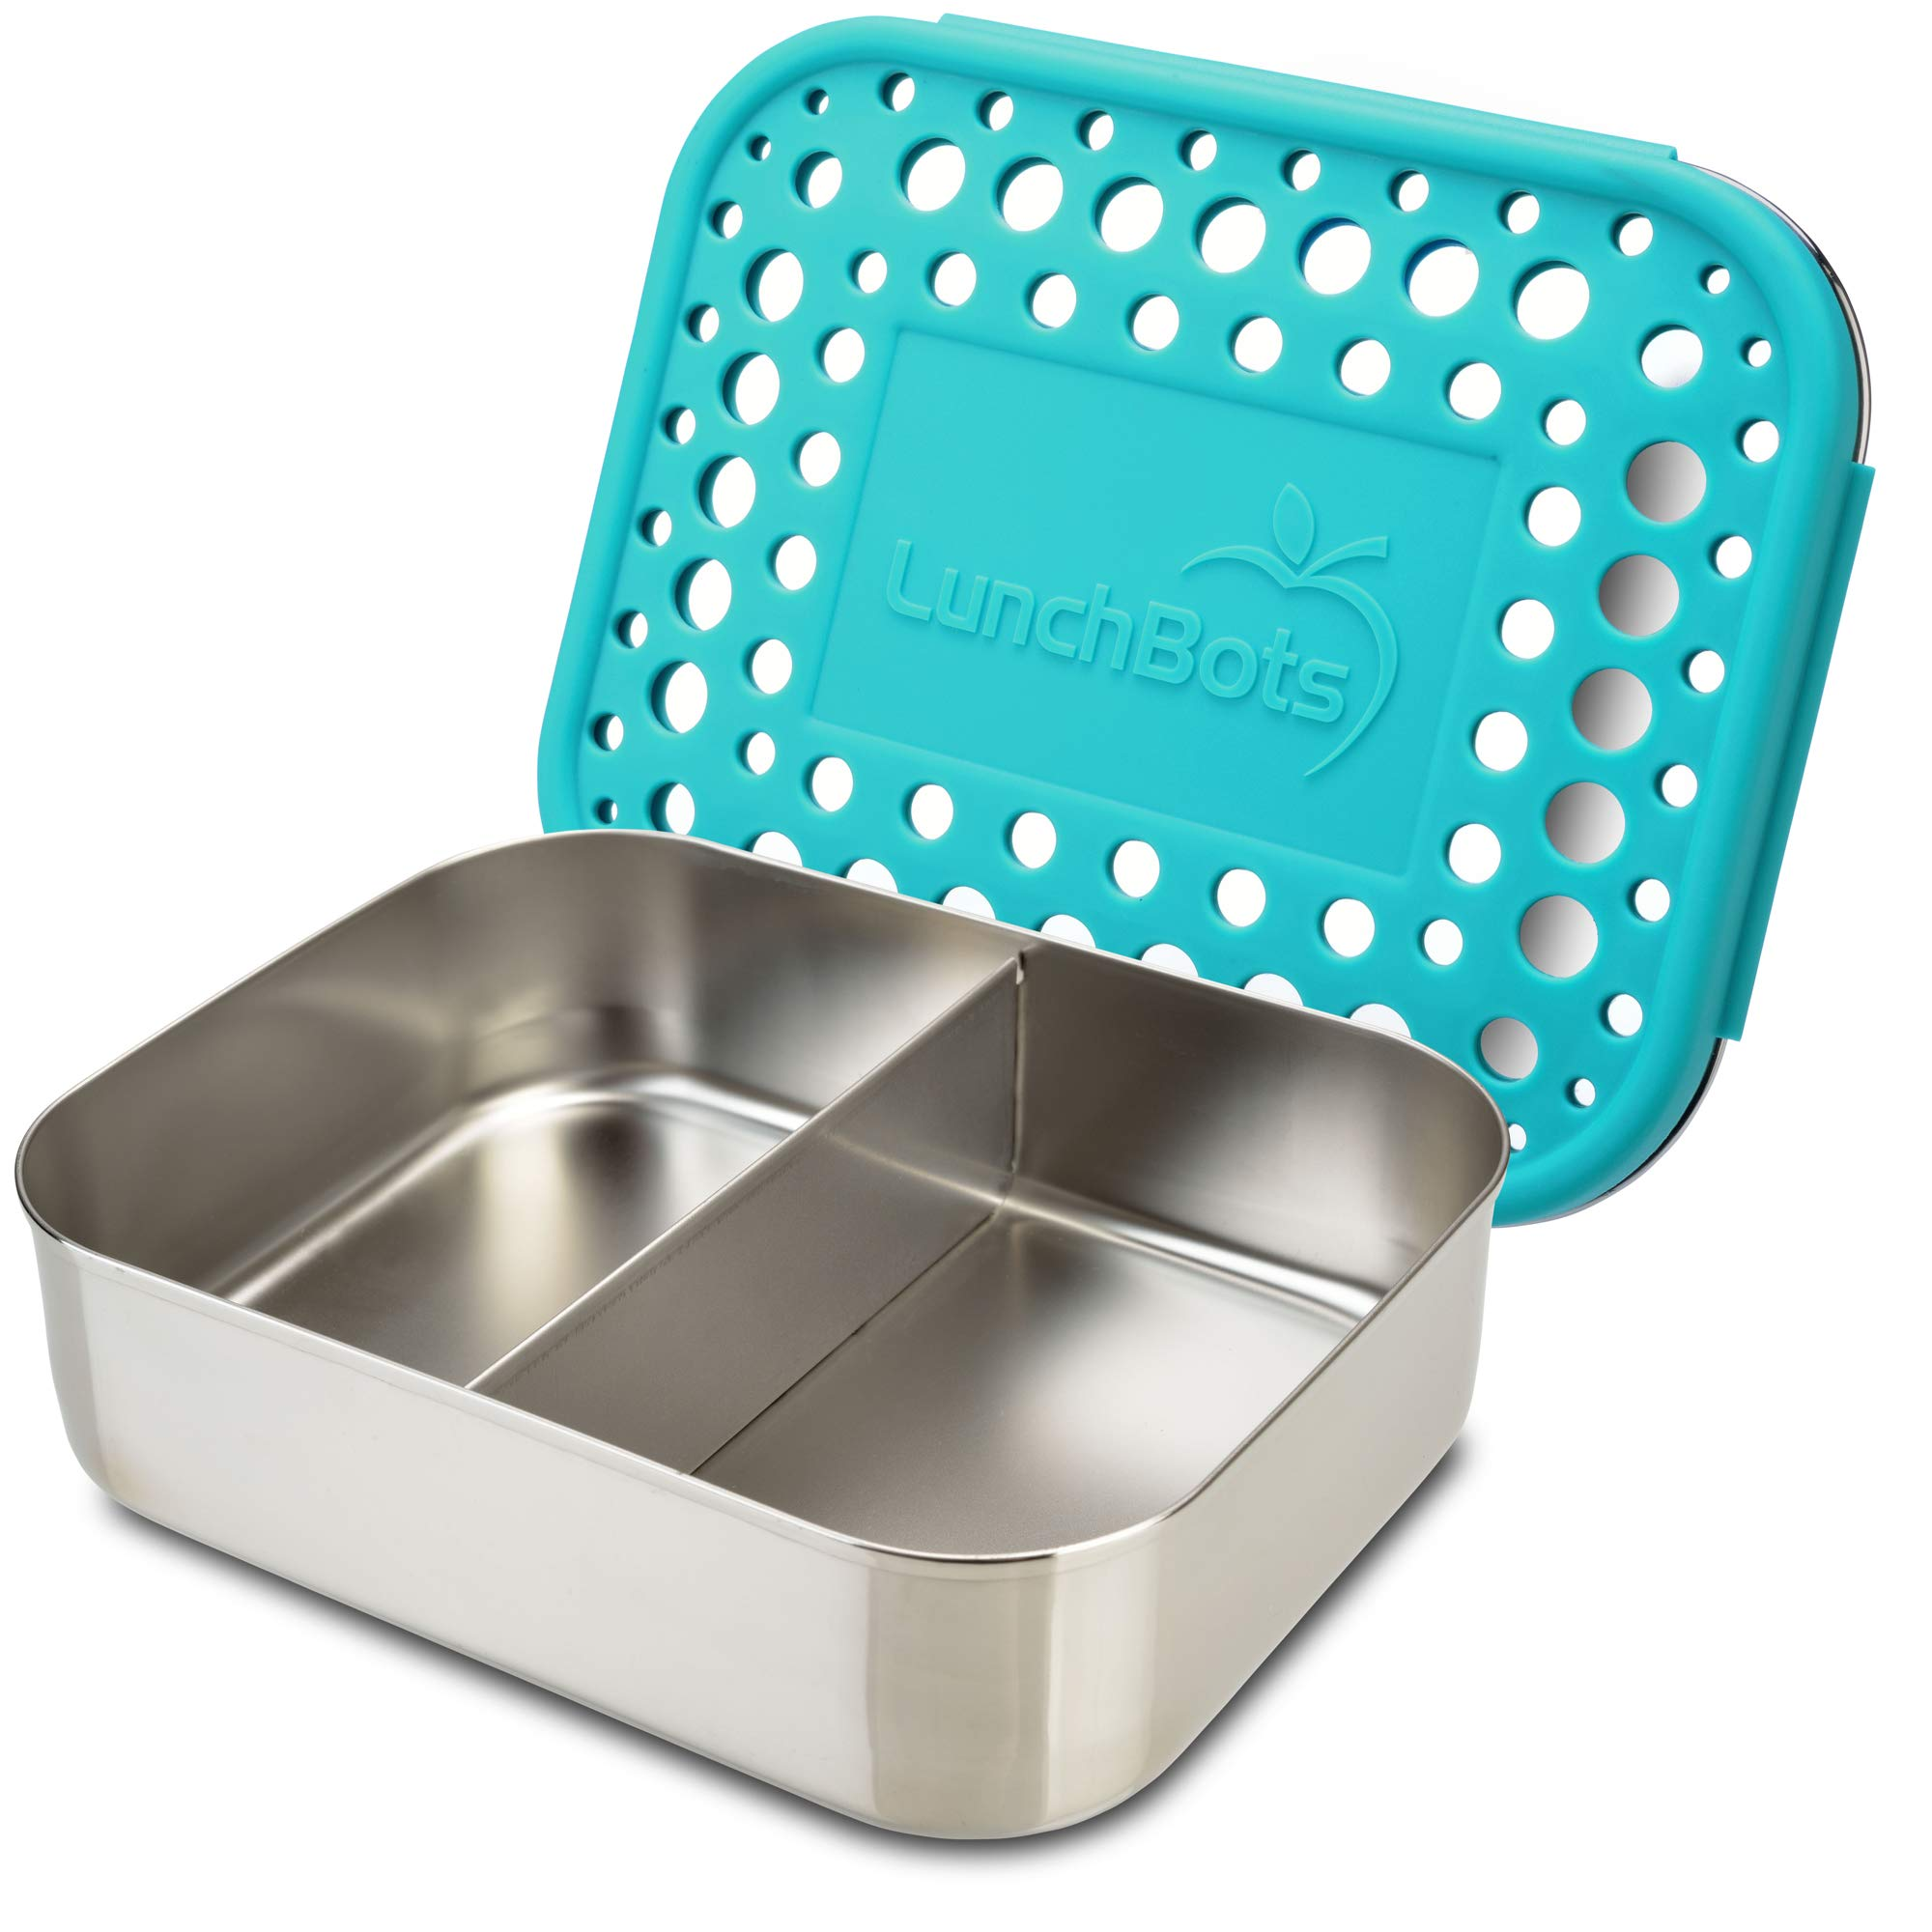 LunchBots Medium Duo Snack Container - Divided Stainless Steel Food Container - Two Sections for Half Sandwich and a Side - Eco-Friendly - Dishwasher Safe - Stainless Lid - Aqua Dots